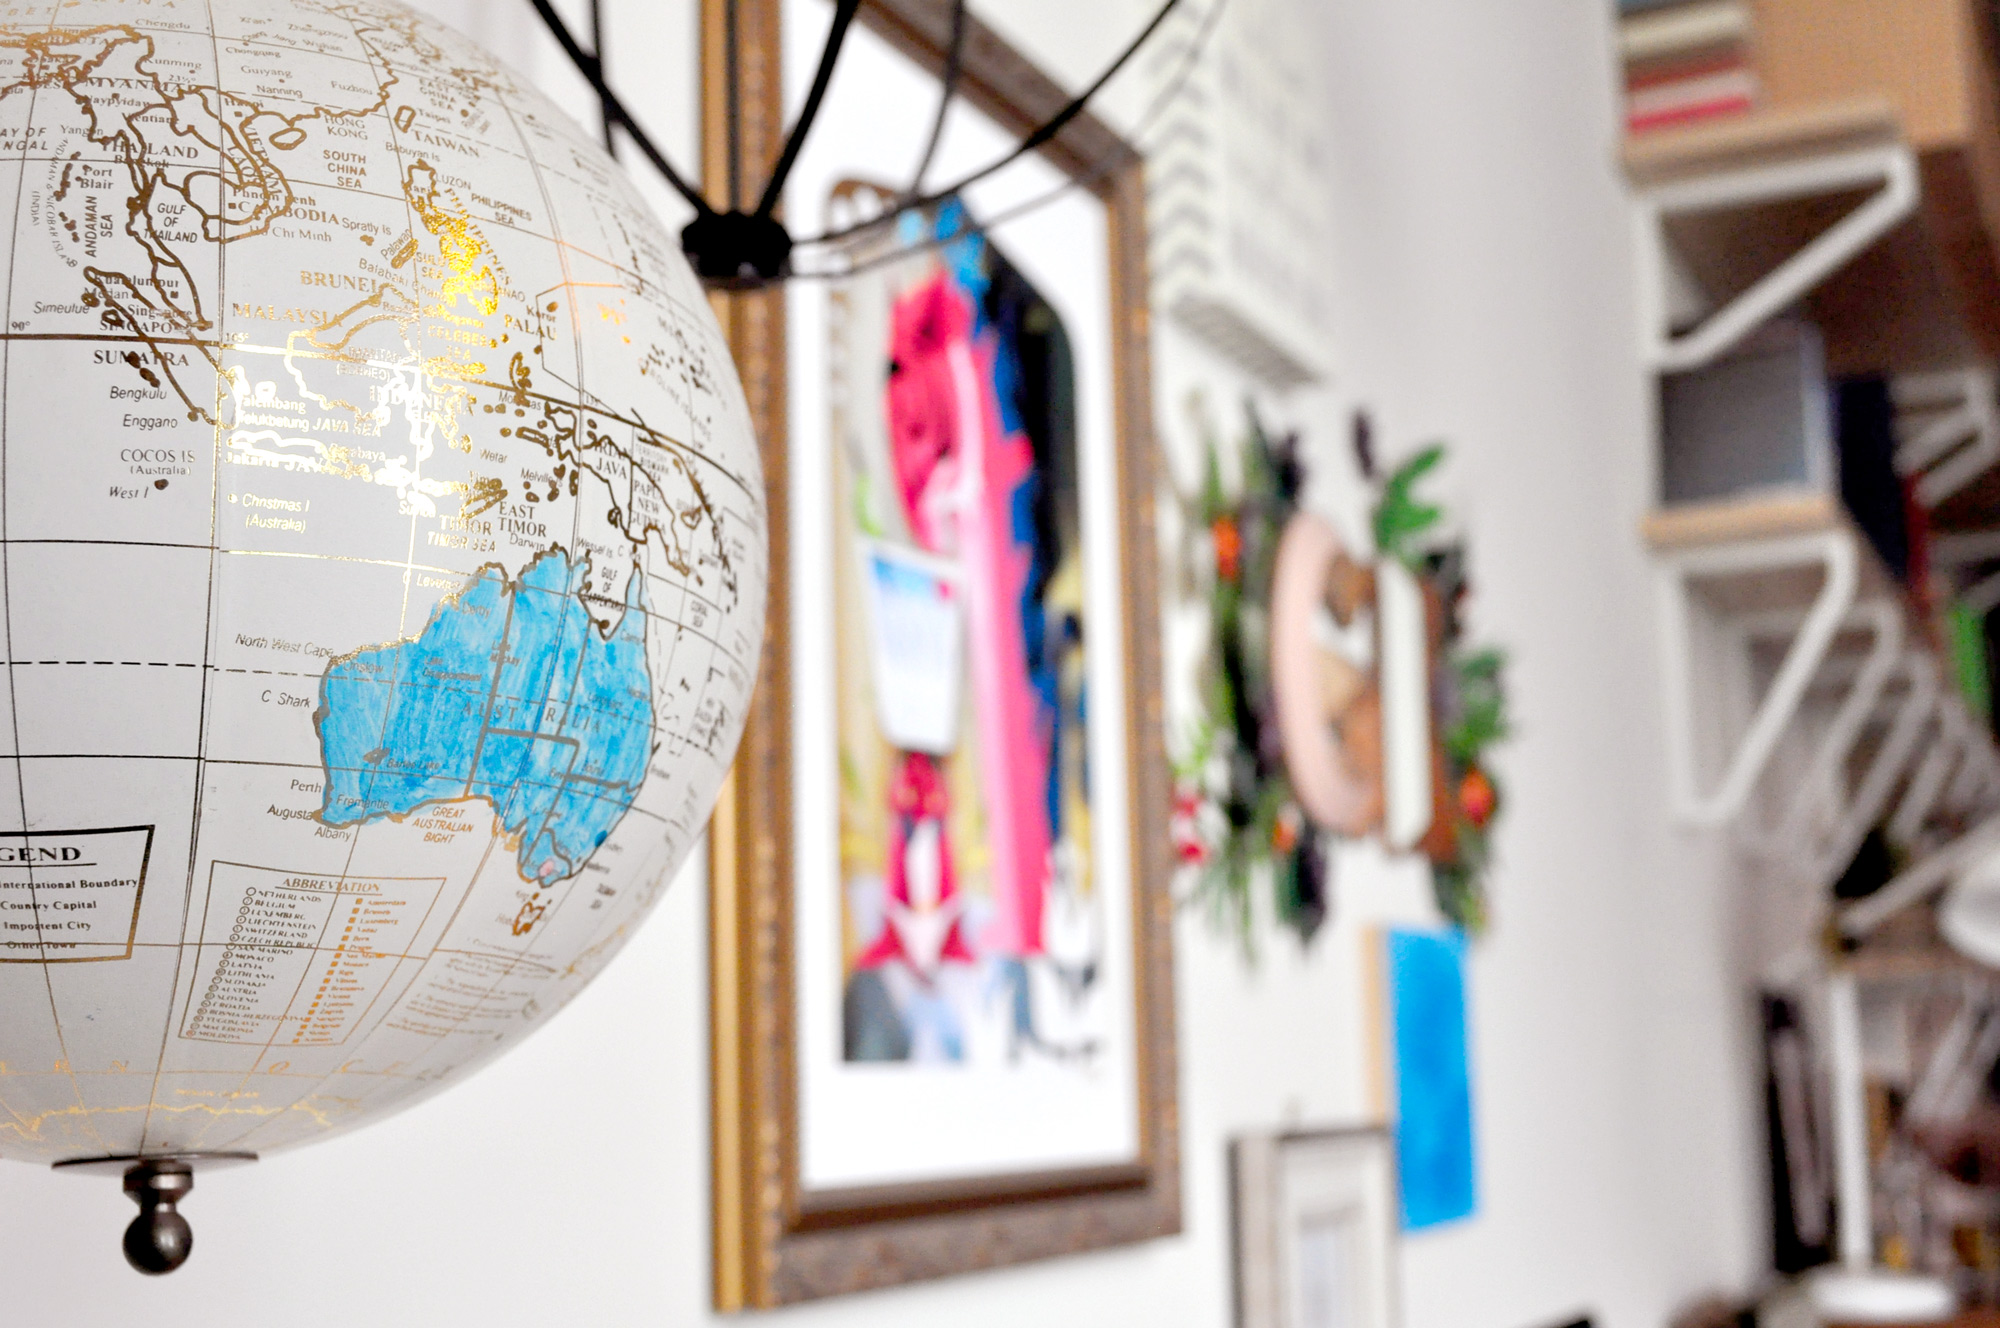 I try to keep this hanging globe updated with all the places my artwork has gone over the years. It's really exciting to see where my works get to travel, and I like to think it's making someone smile is each of those places at any given time.